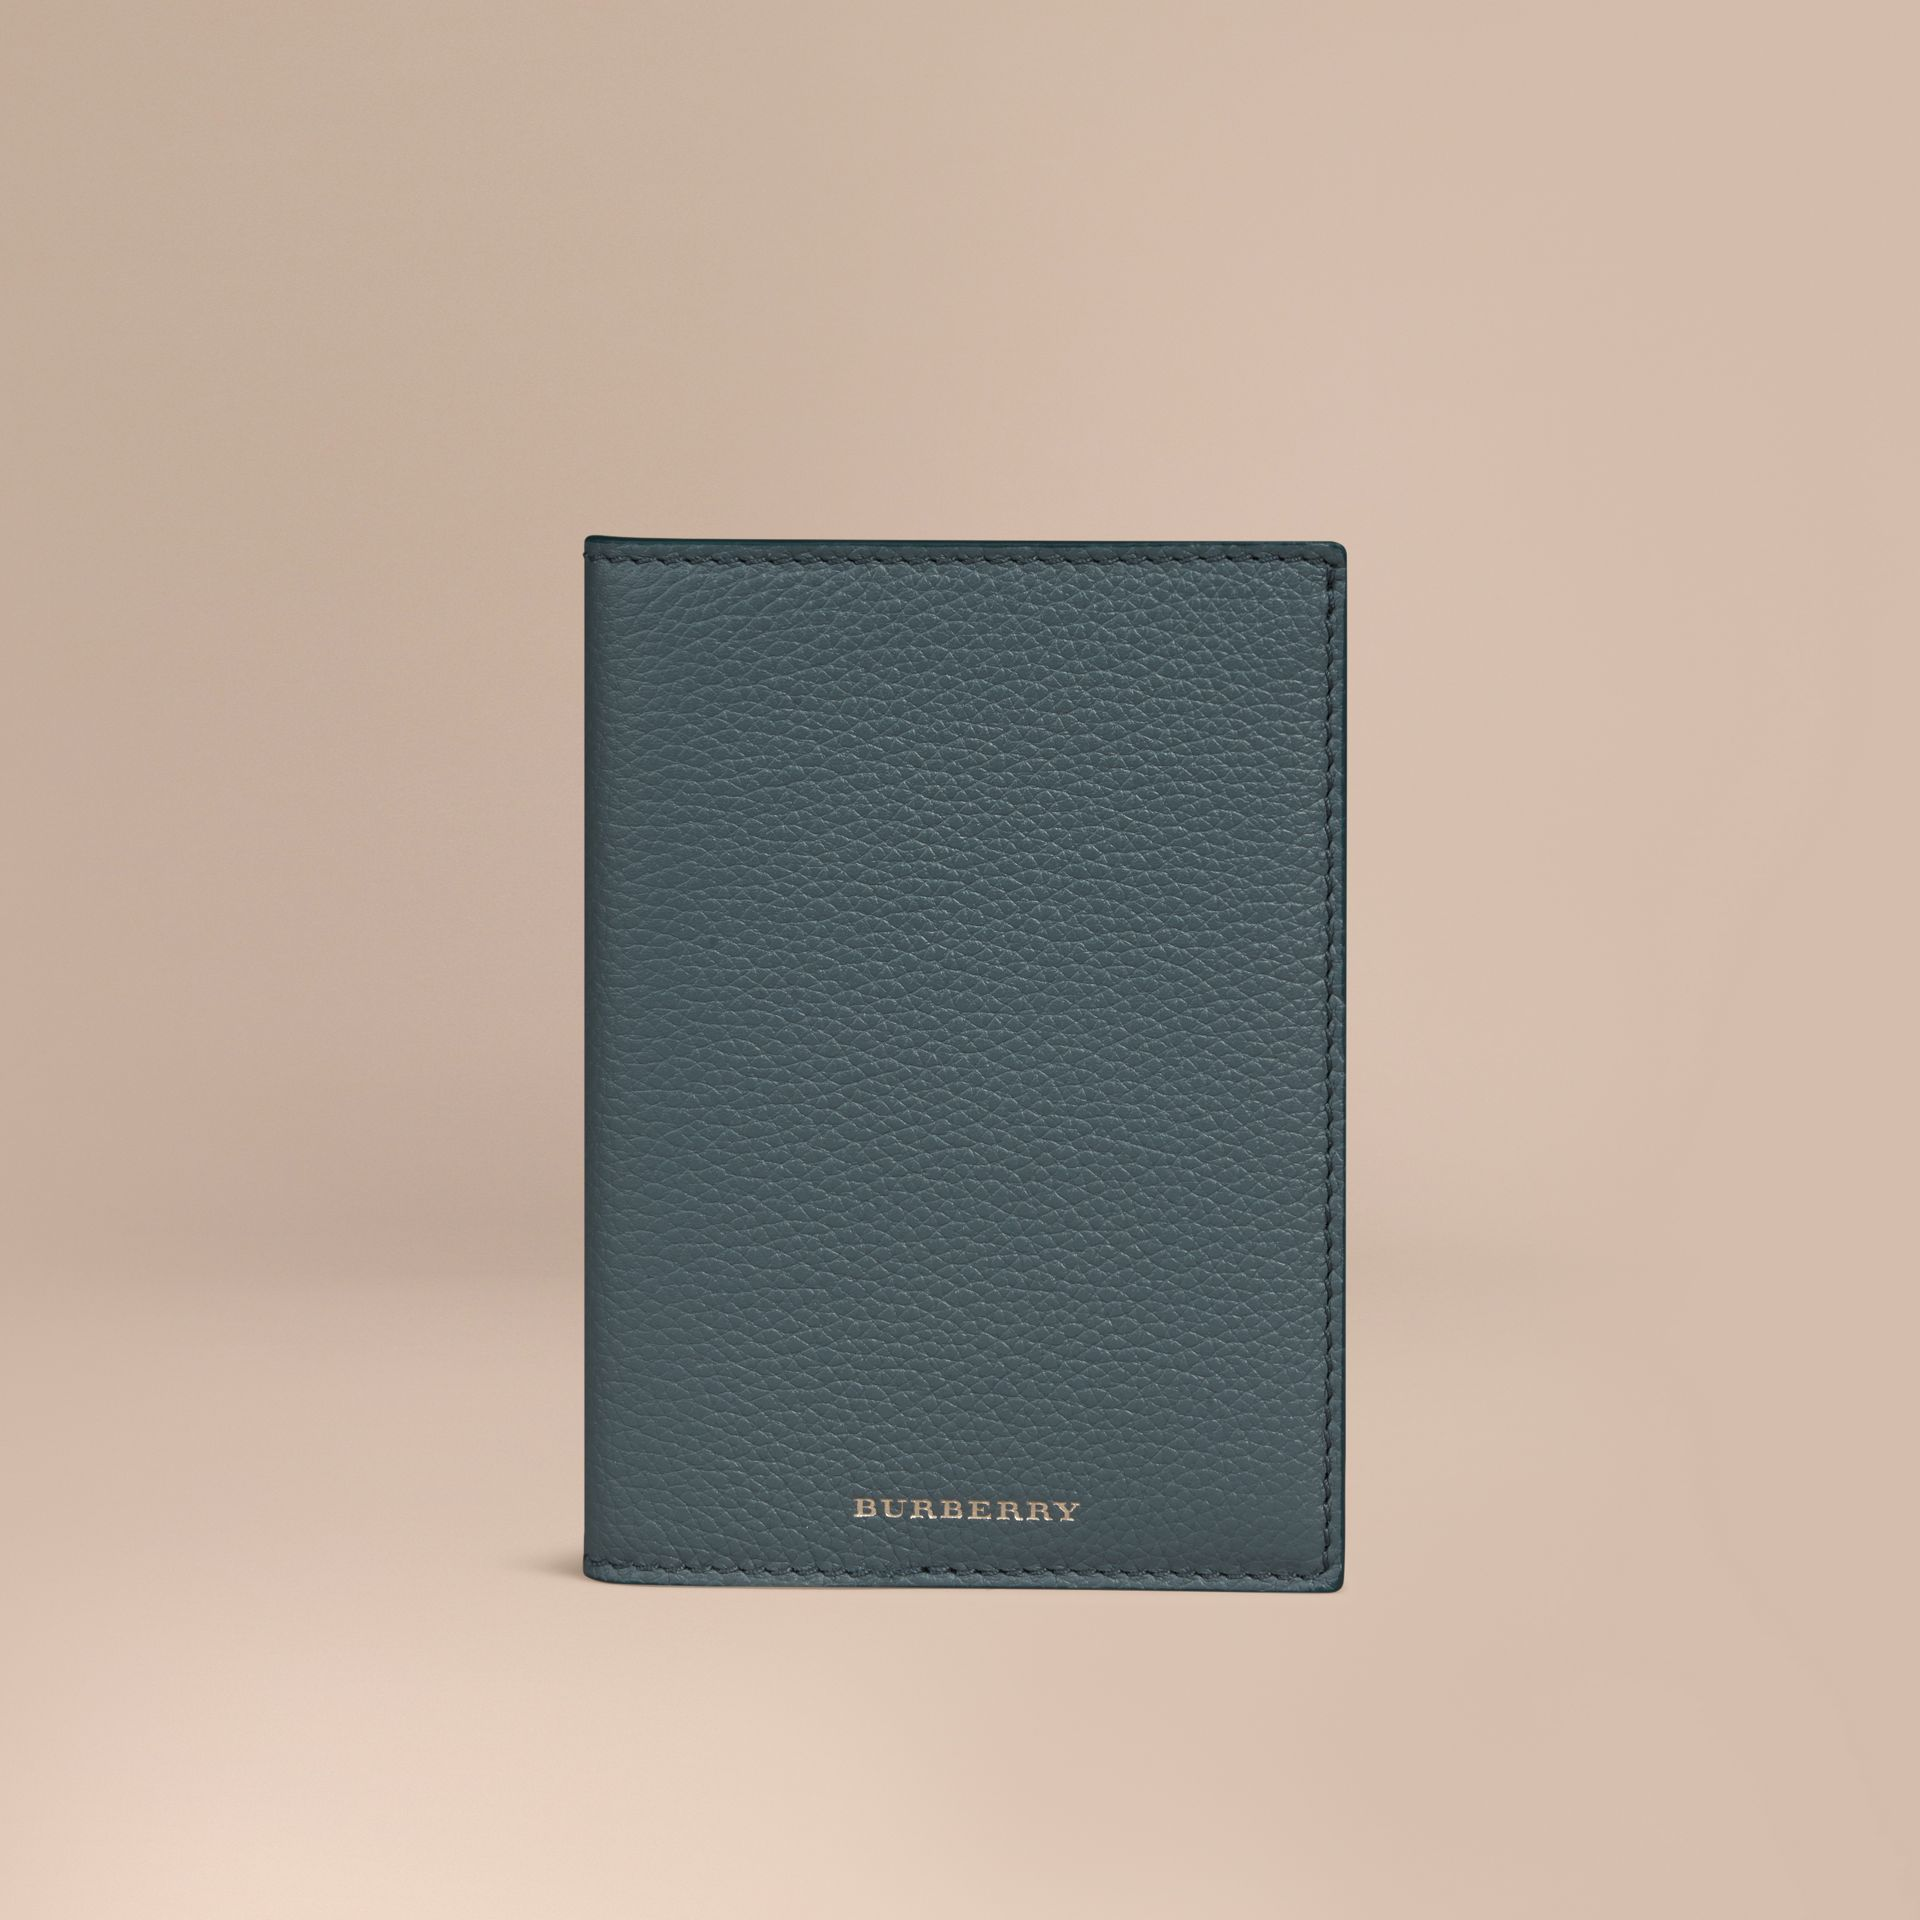 Grainy Leather Passport Cover in Dusty Teal | Burberry Hong Kong - gallery image 1